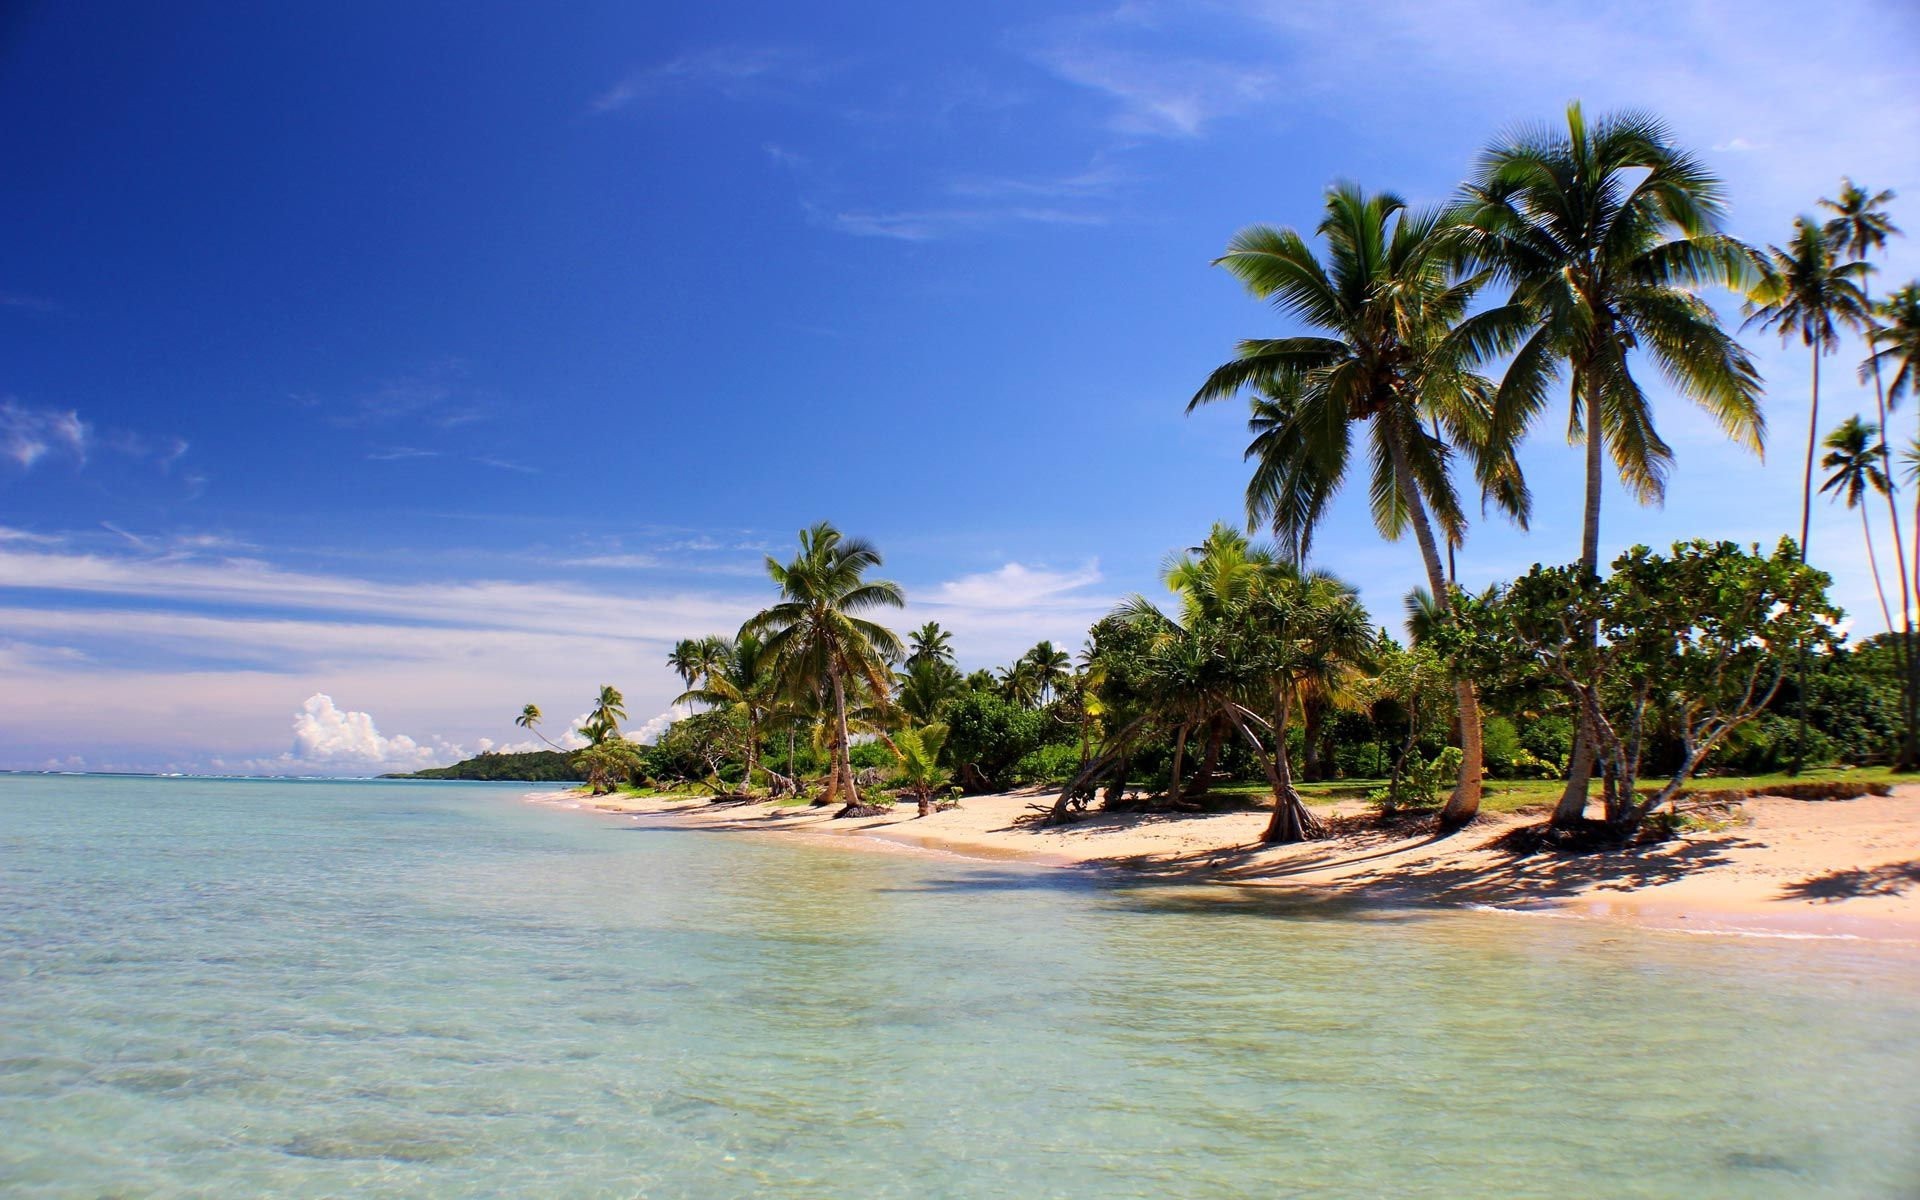 SIGASIGA SANDS - The Ultimate Paradise